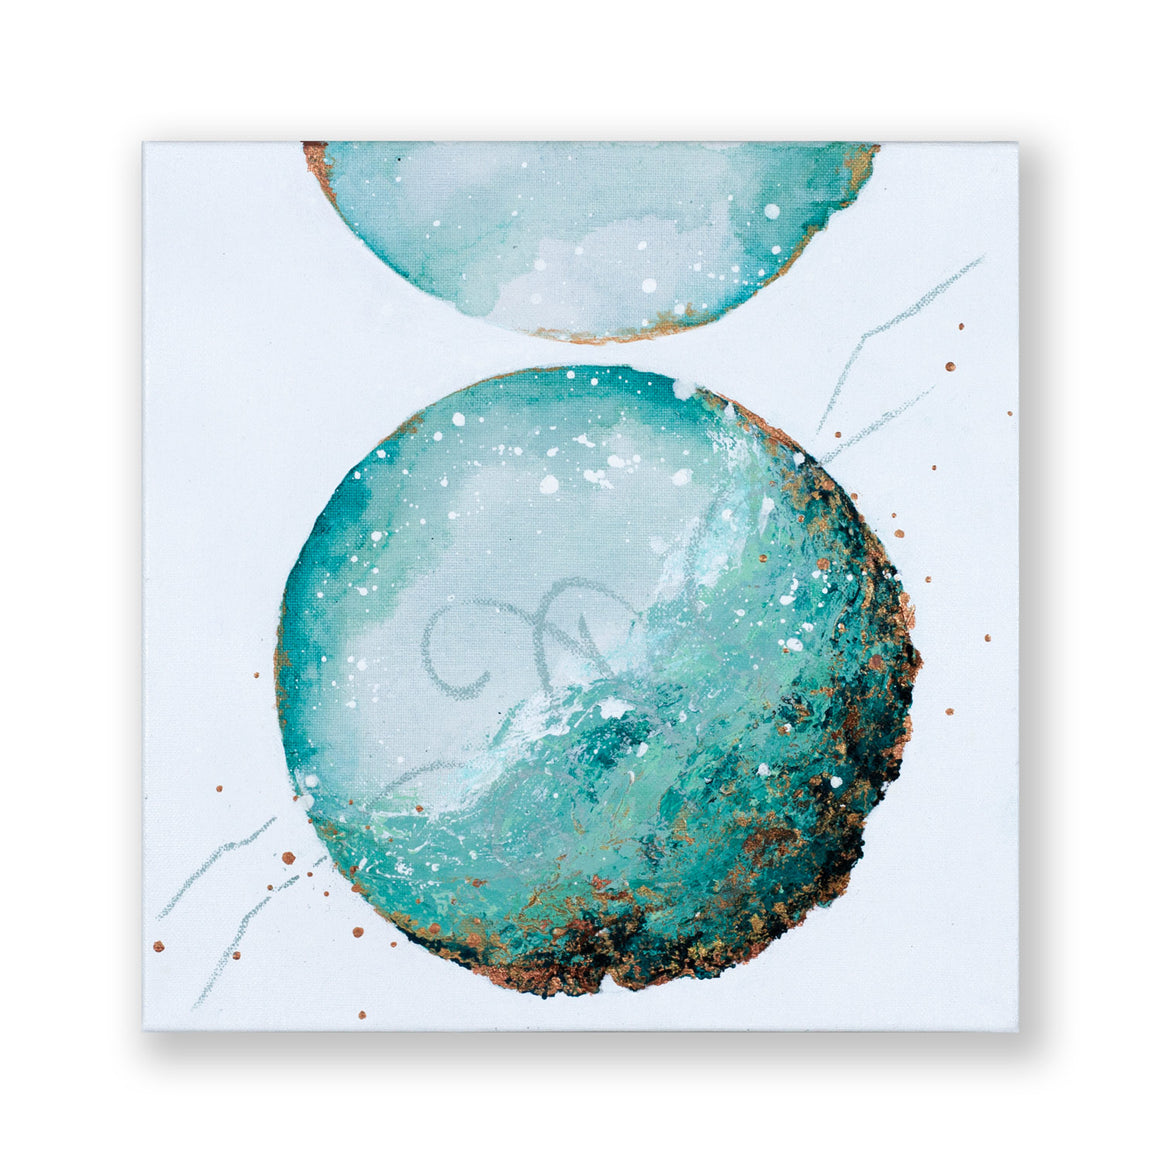 Tentative | Copper Verdigris moon painting 30cm x 30cm